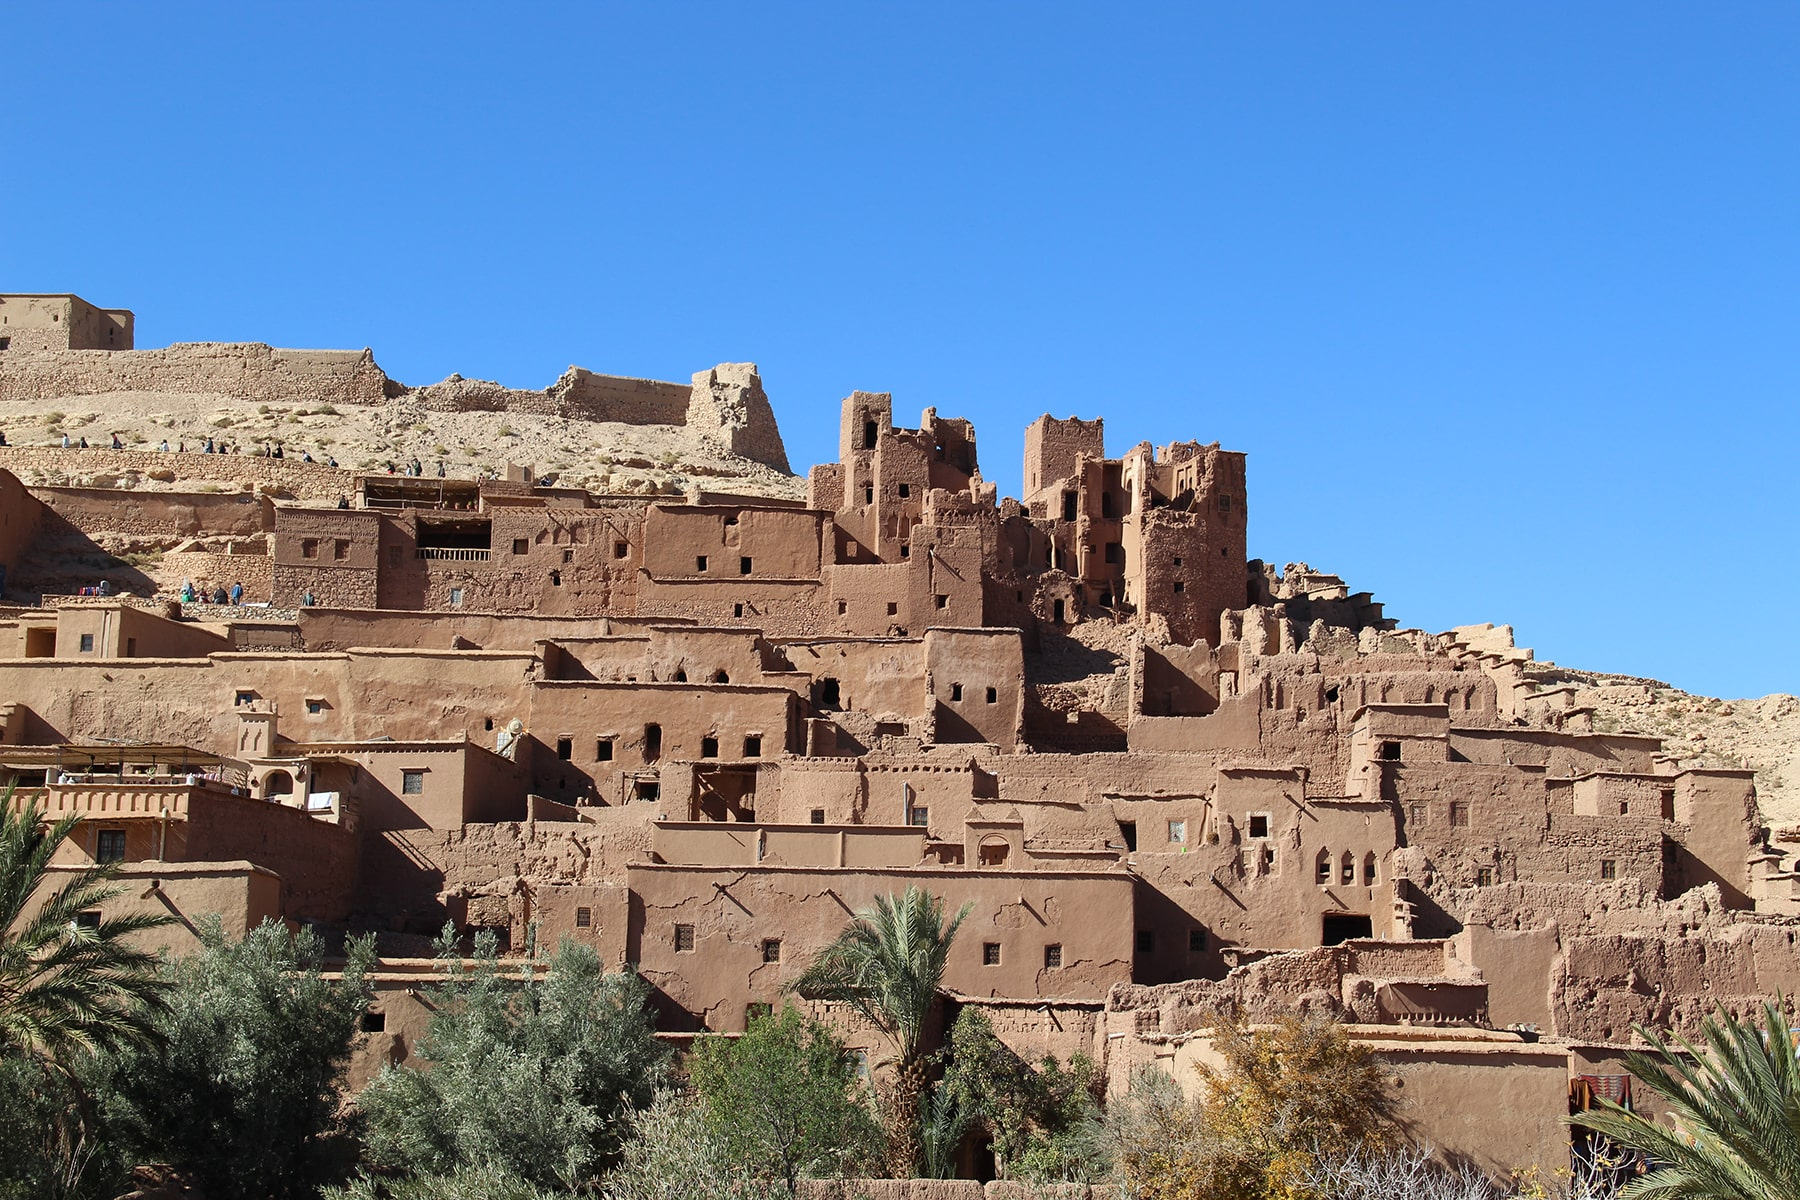 Ait Benhaddou ksar with houses and kasbahs